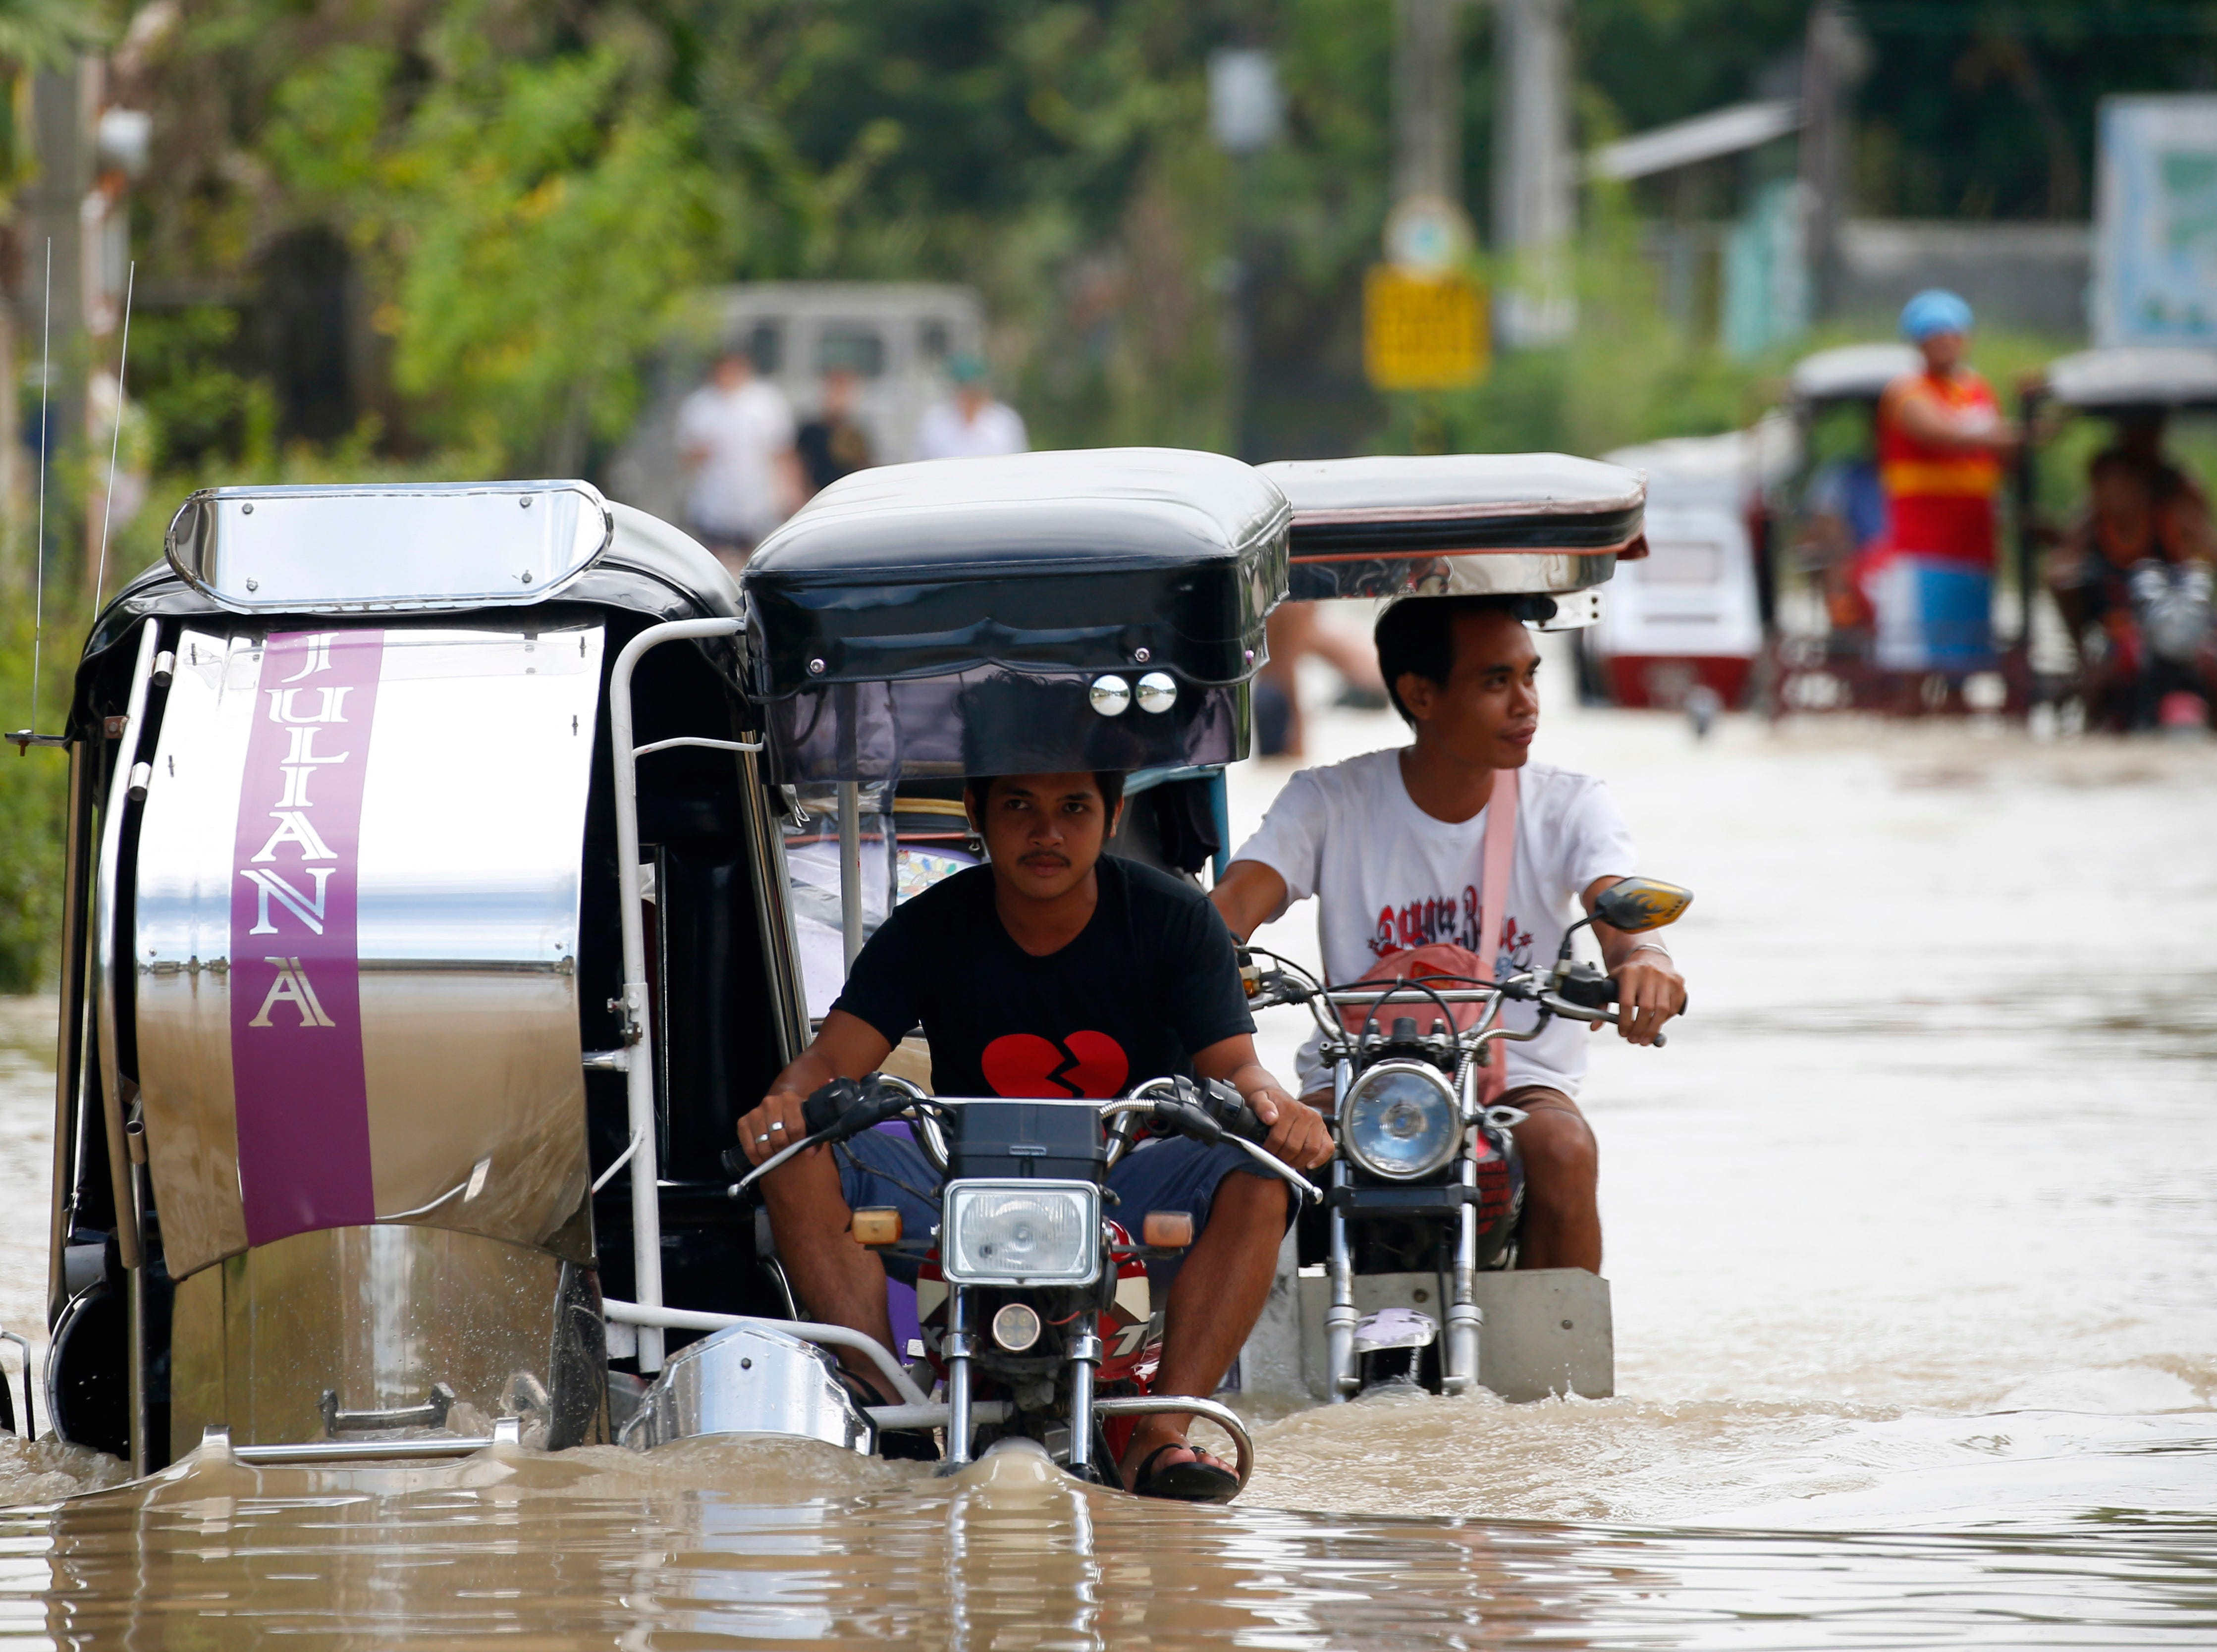 People travel through a flooded road brought about by Typhoon Mangkhut which barreled into northeastern Philippines during the weekend and inundated low-lying areas in its 900-kilometer wide cloud band, Monday, Sept. 17, 2018 in Calumpit township, Bulacan province north of Manila, Philippines. A Philippine mayor says it's highly unlikely any of the 40 to 50 people who are feared buried in a mudslide set off by Typhoon Mangkhut can be found alive.